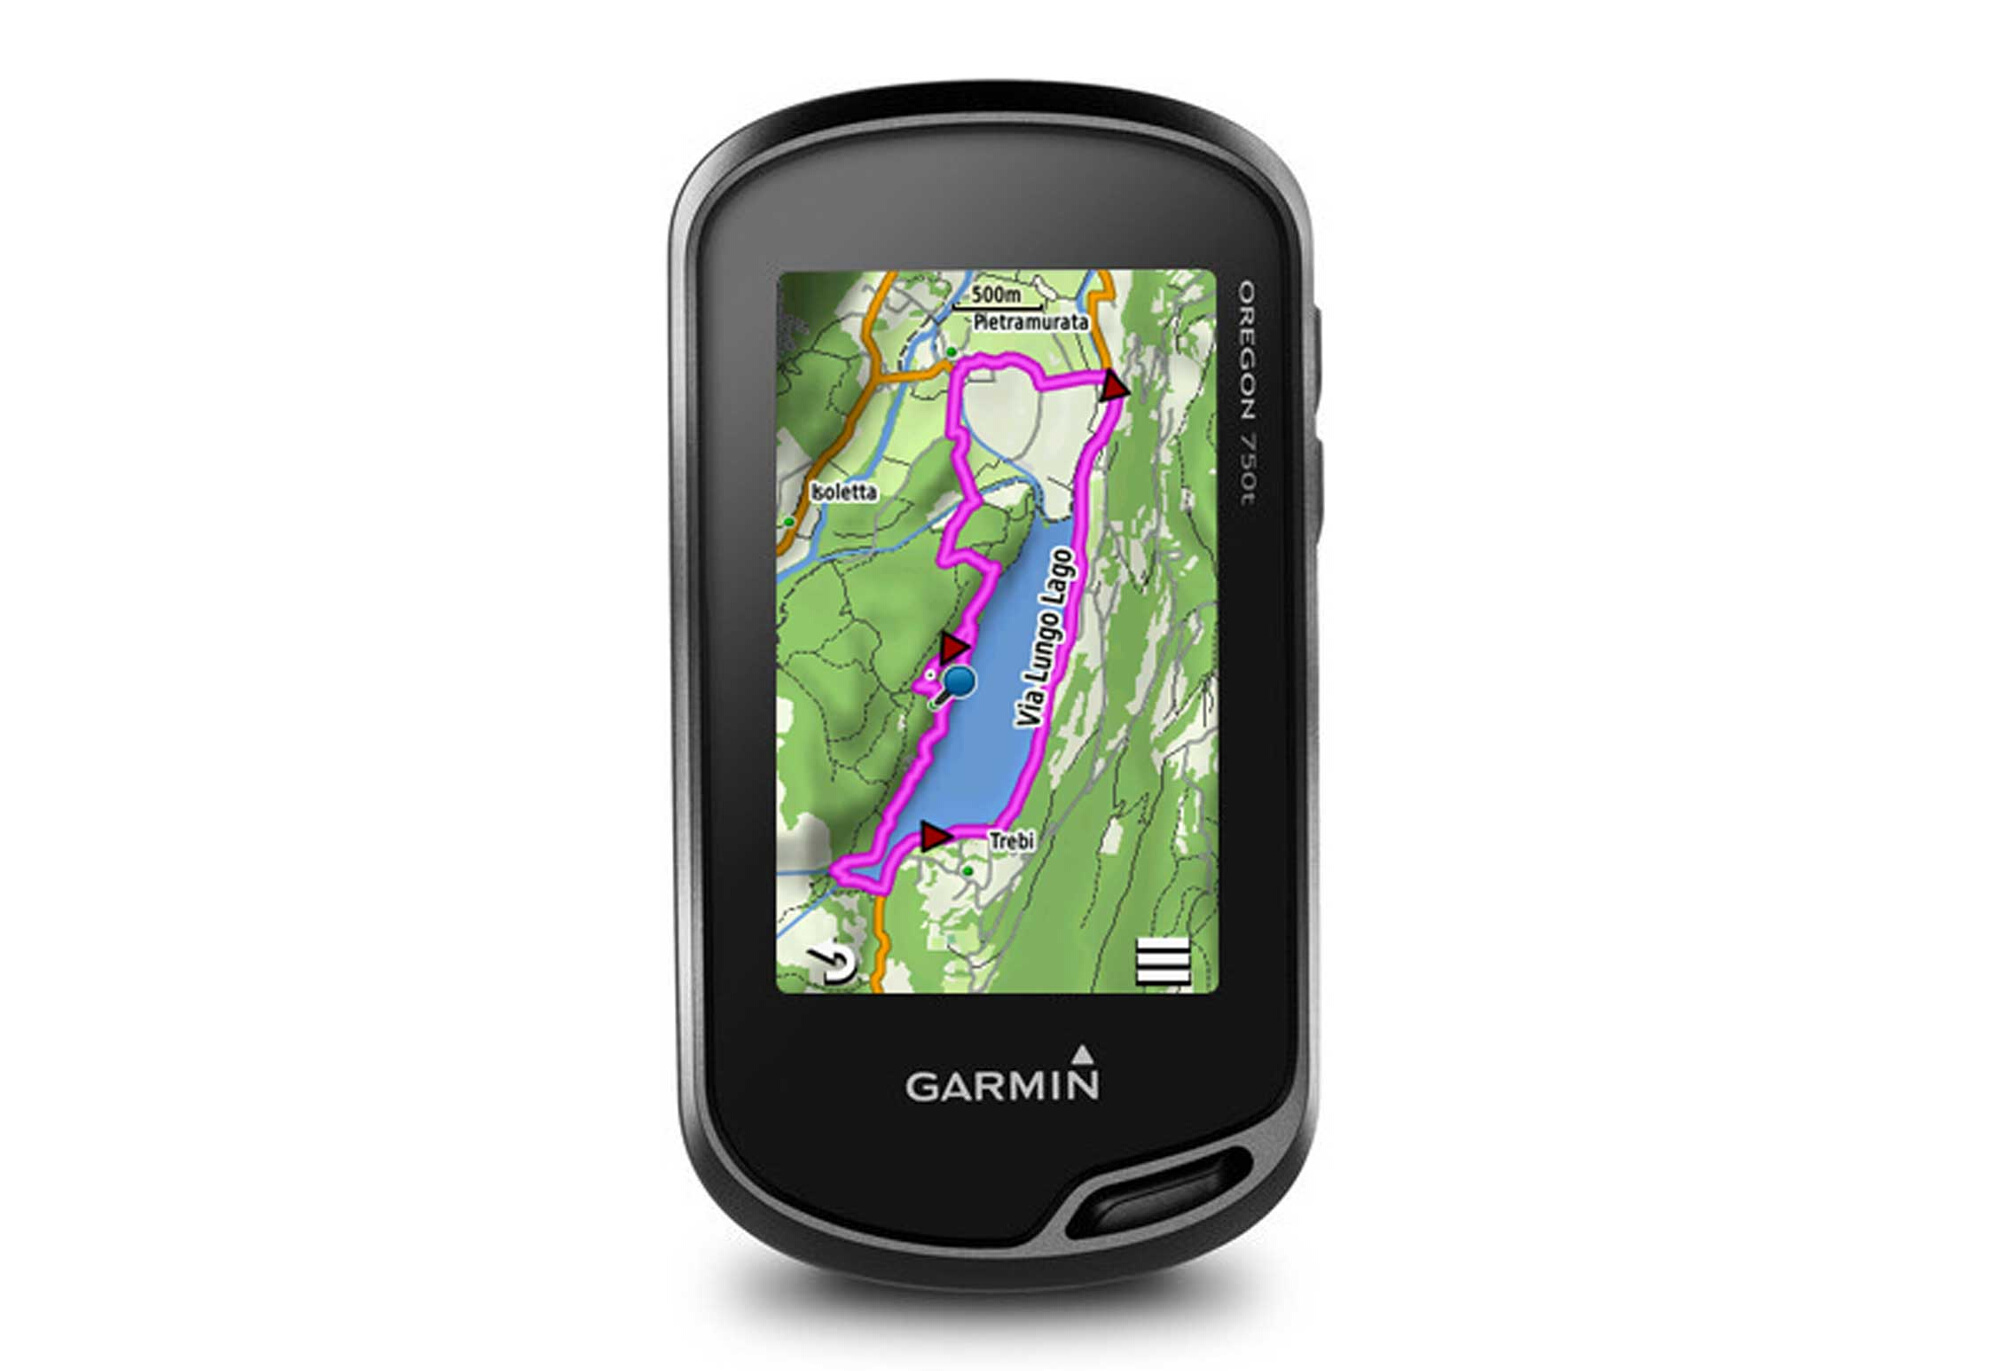 compteur gps garmin oregon 750t avec cartographie europe de l ouest. Black Bedroom Furniture Sets. Home Design Ideas